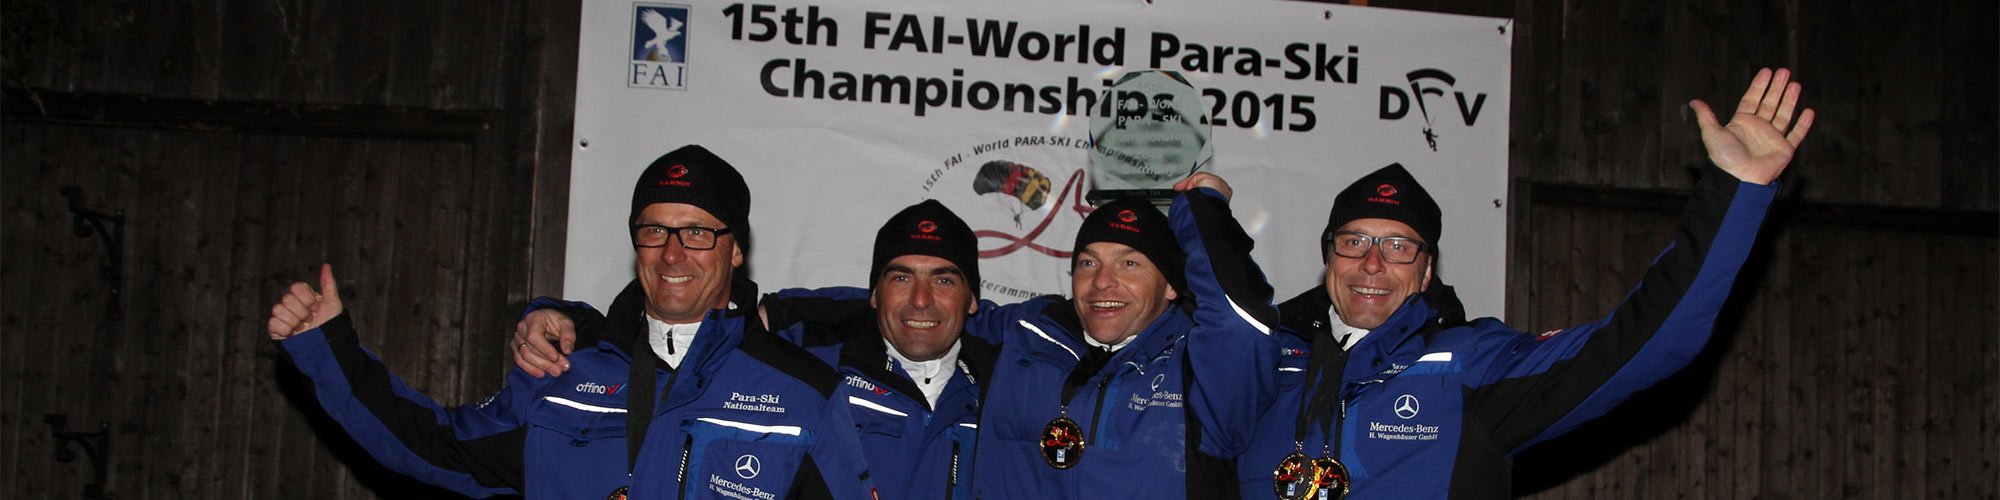 WPC 2015 Para-Ski — Saturday Impressions